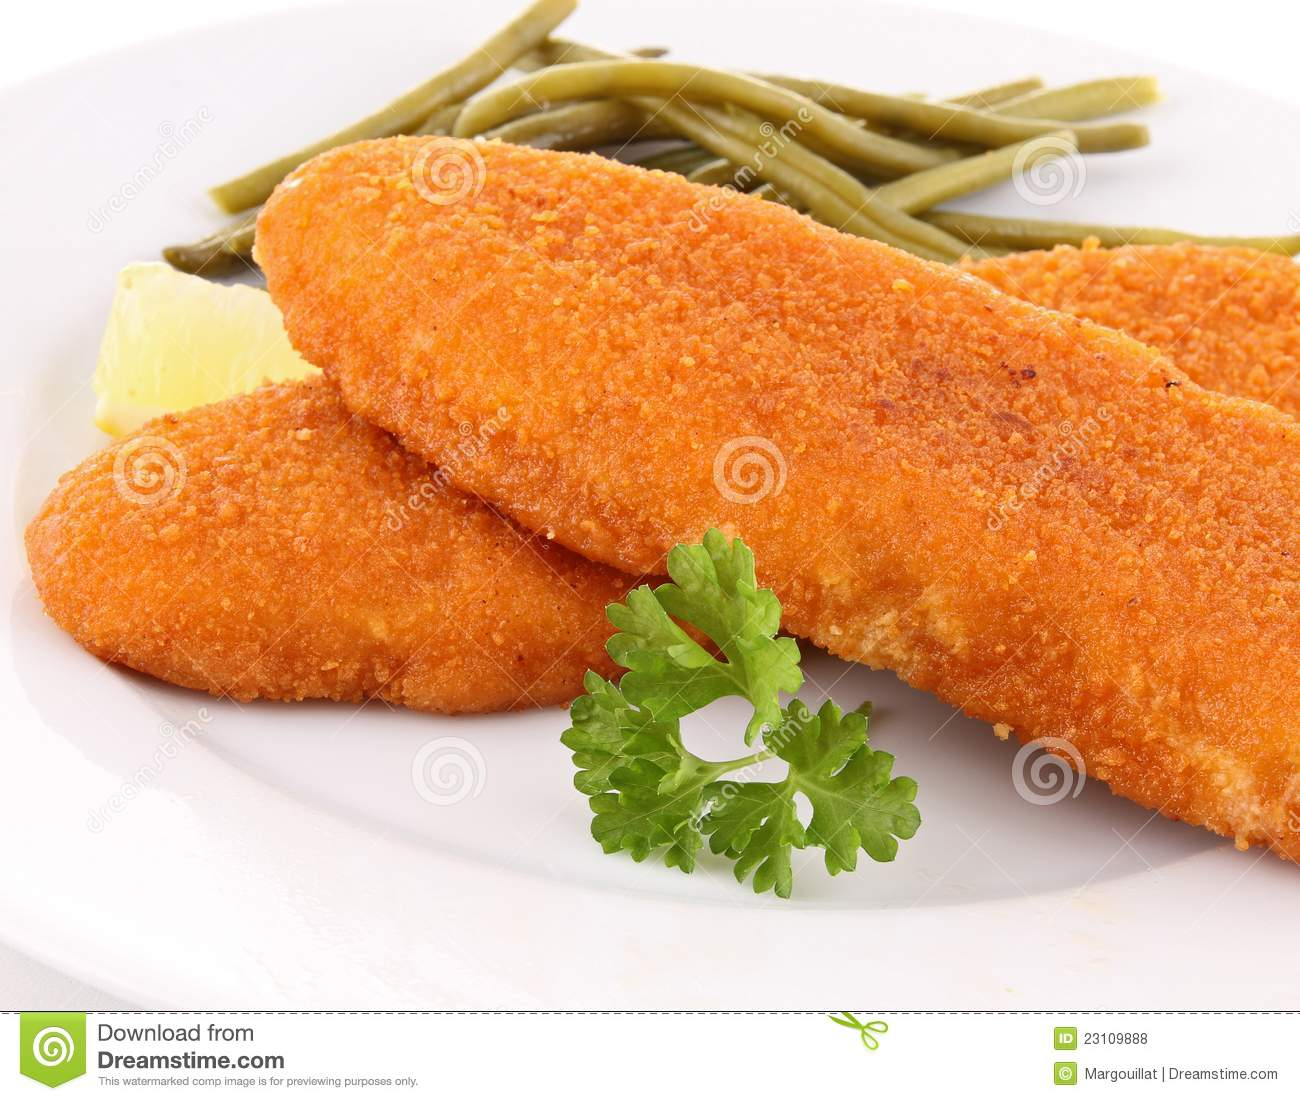 Breaded fish royalty free stock photos image 23109888 for How to bread fish